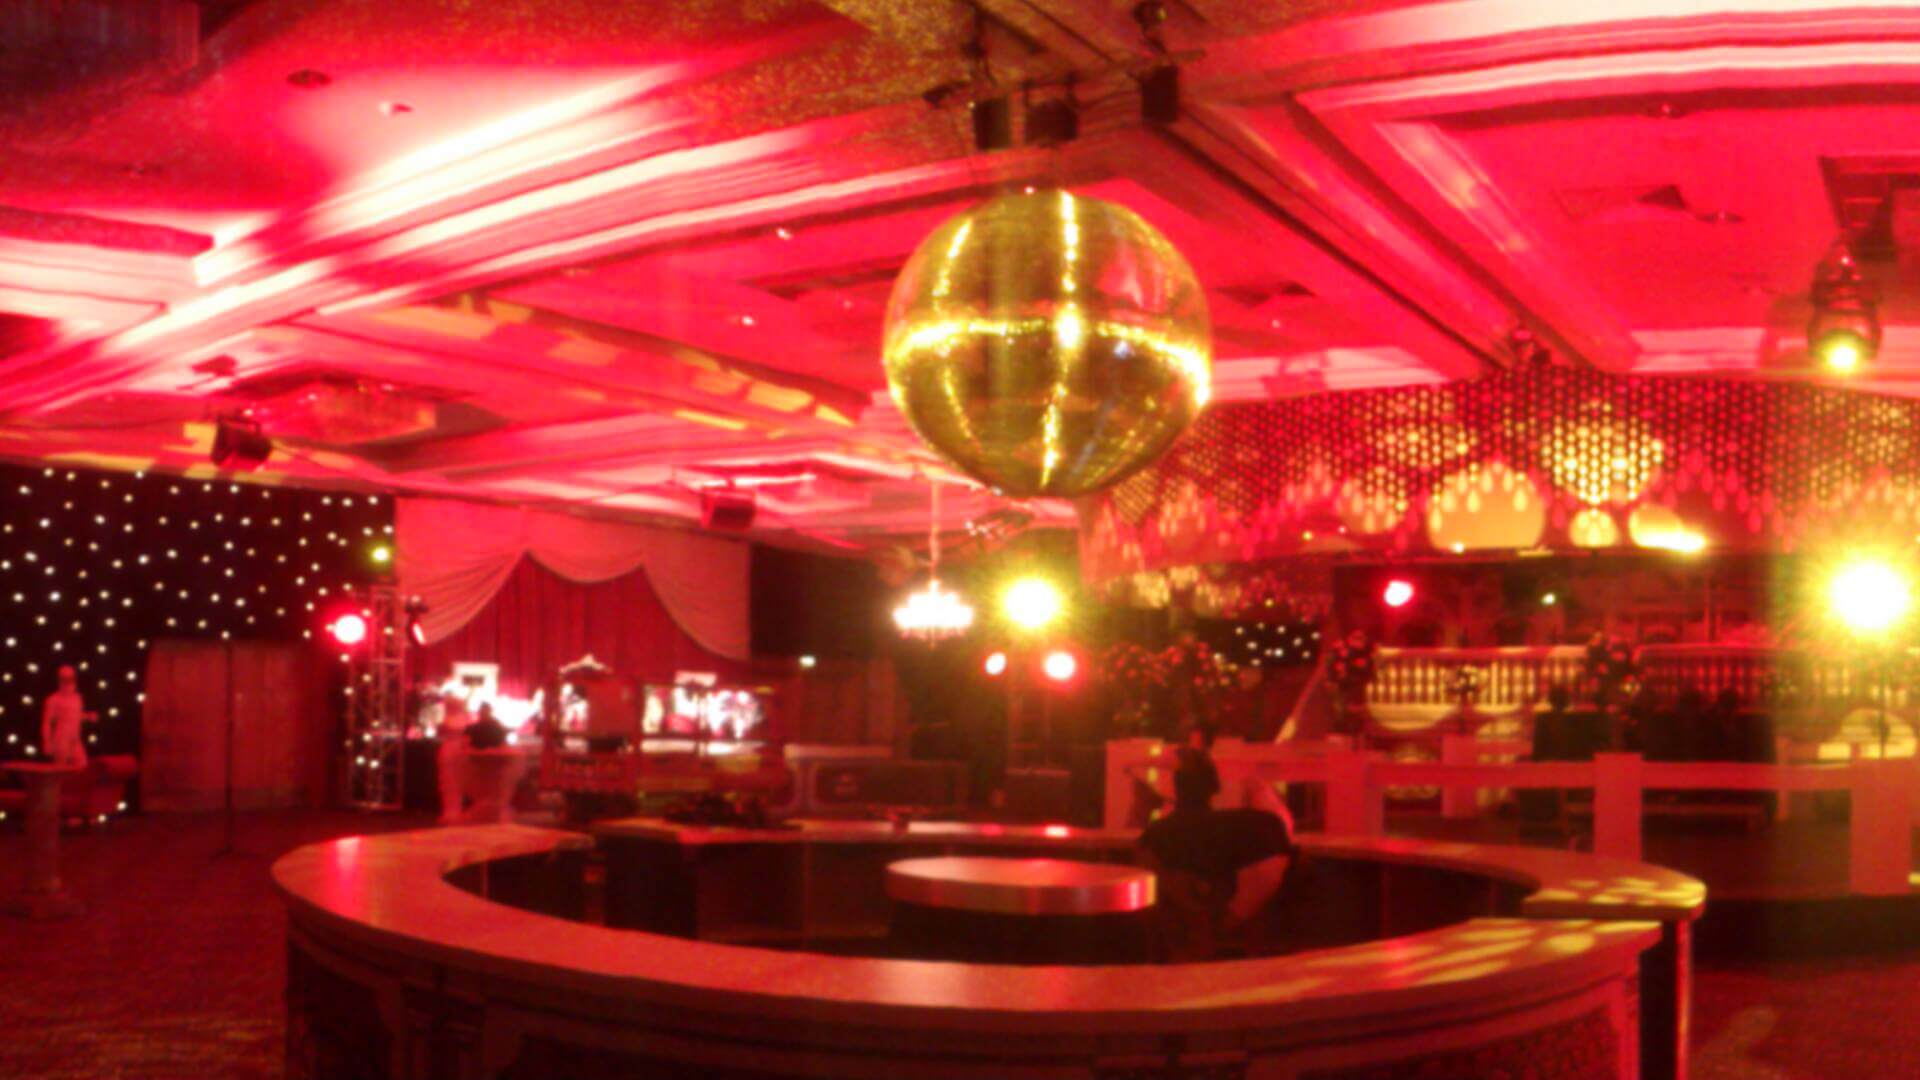 drapery fabric ceiling fabrics event hire how stage events theatre hang drape and drapes gauze for to